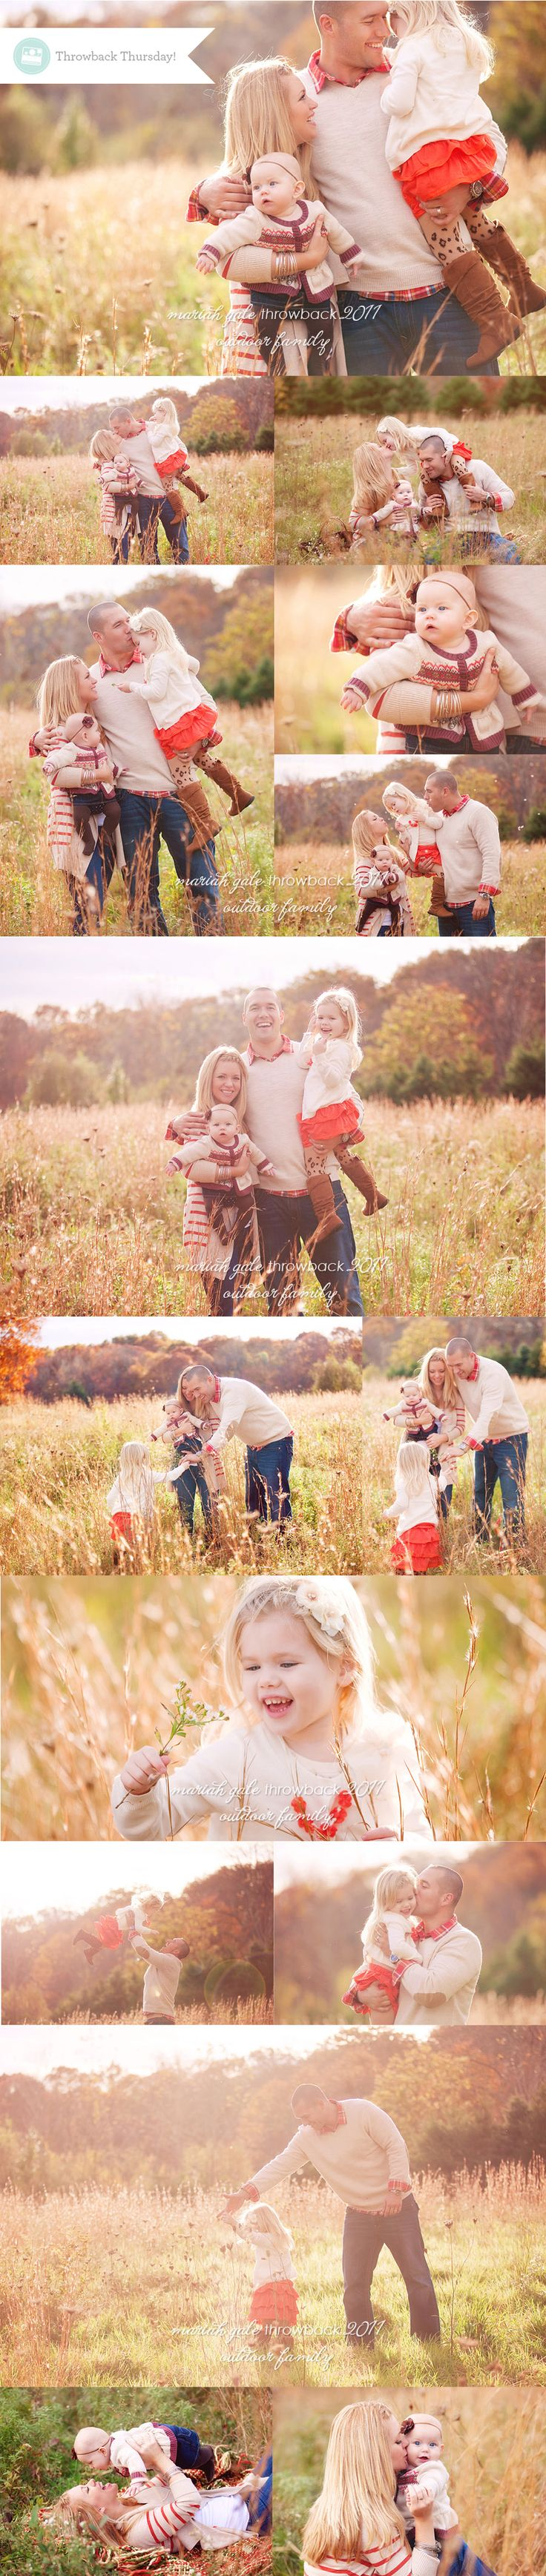 Throwback Thrusday Heidi Hope Photography our family portraits 2013